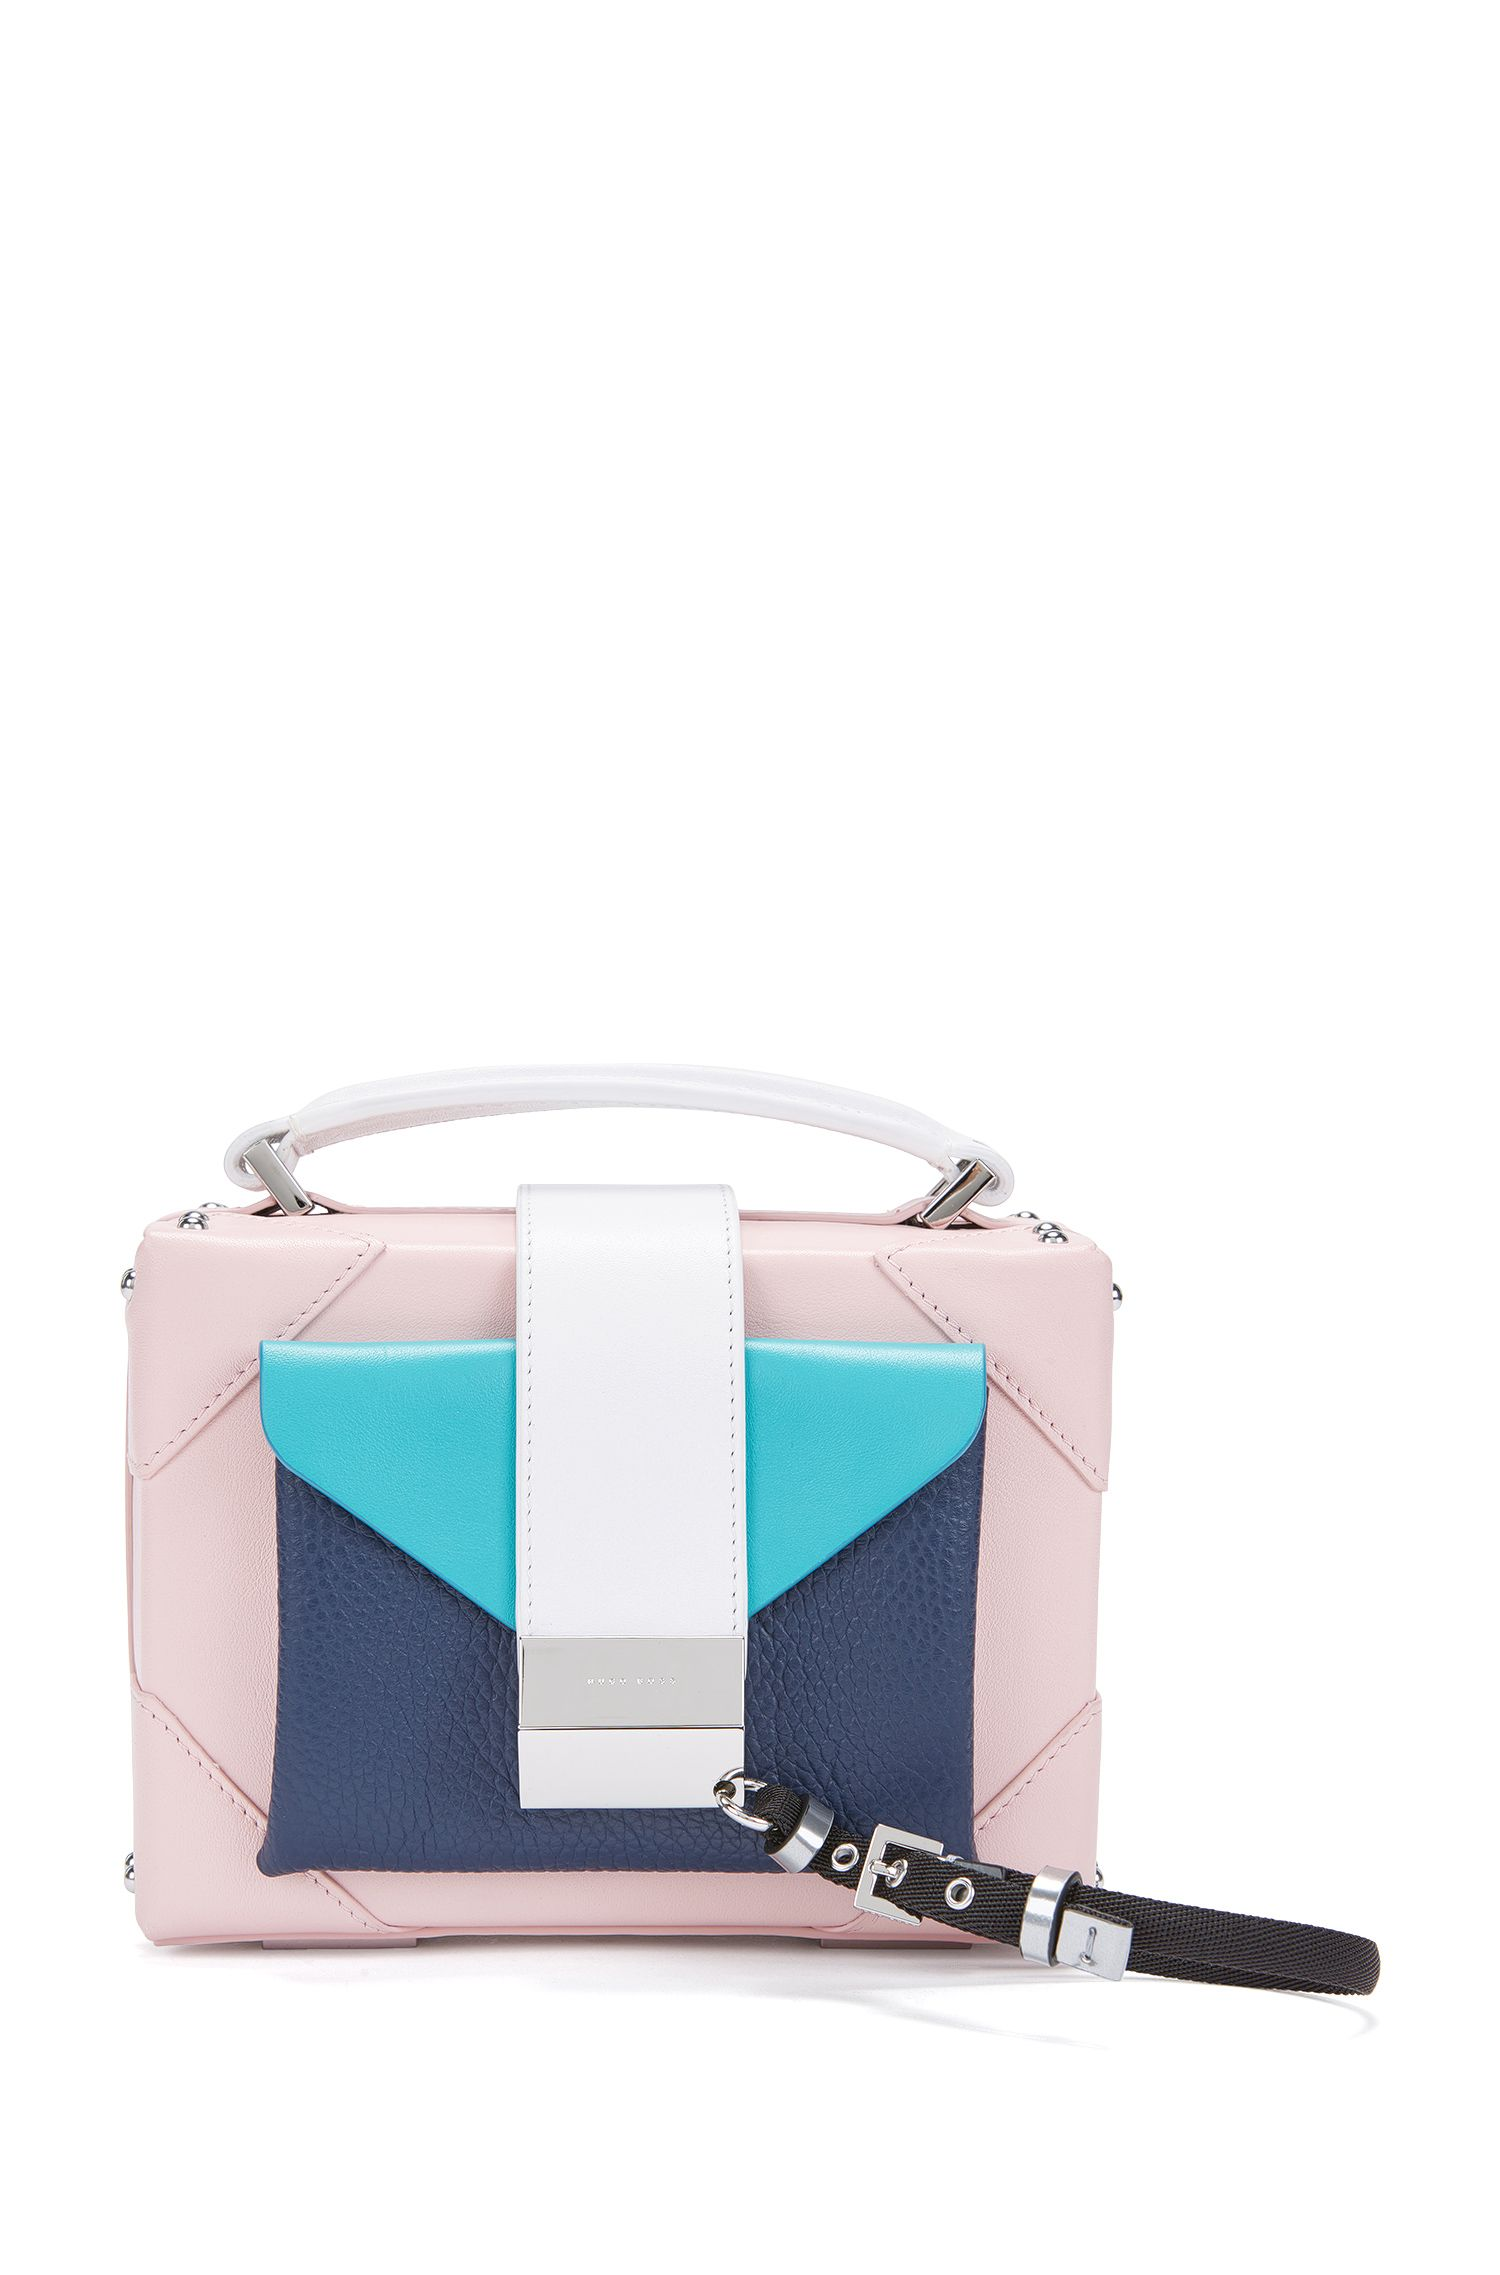 Gallery Collection Leather Shoulder Bag | Lexi Sh. Bag GC , light pink